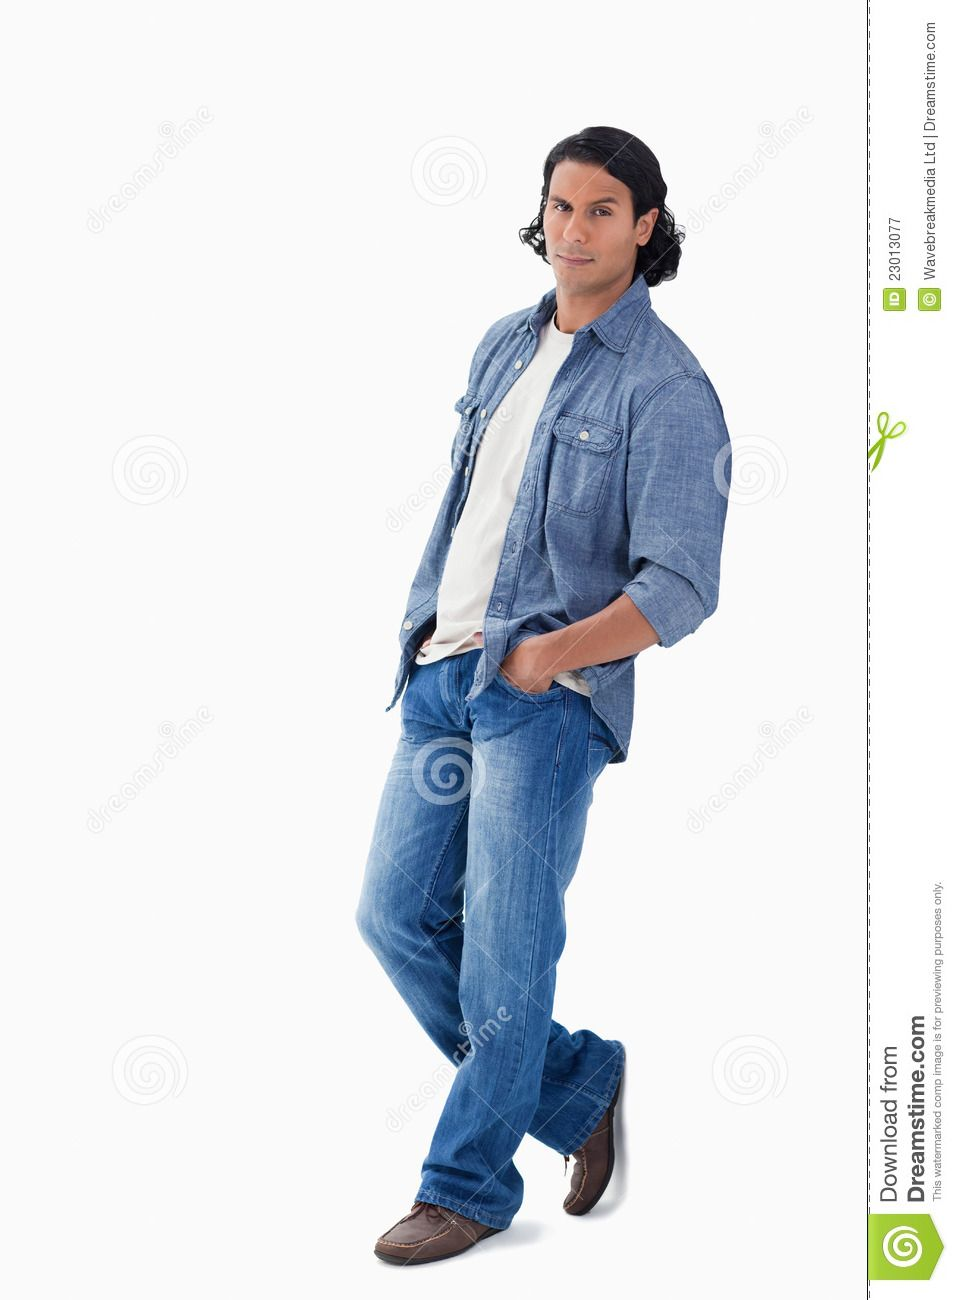 Image Result For Hands In Pocket Lean On Wall Denim Jacket Figure Drawing Poses Denim